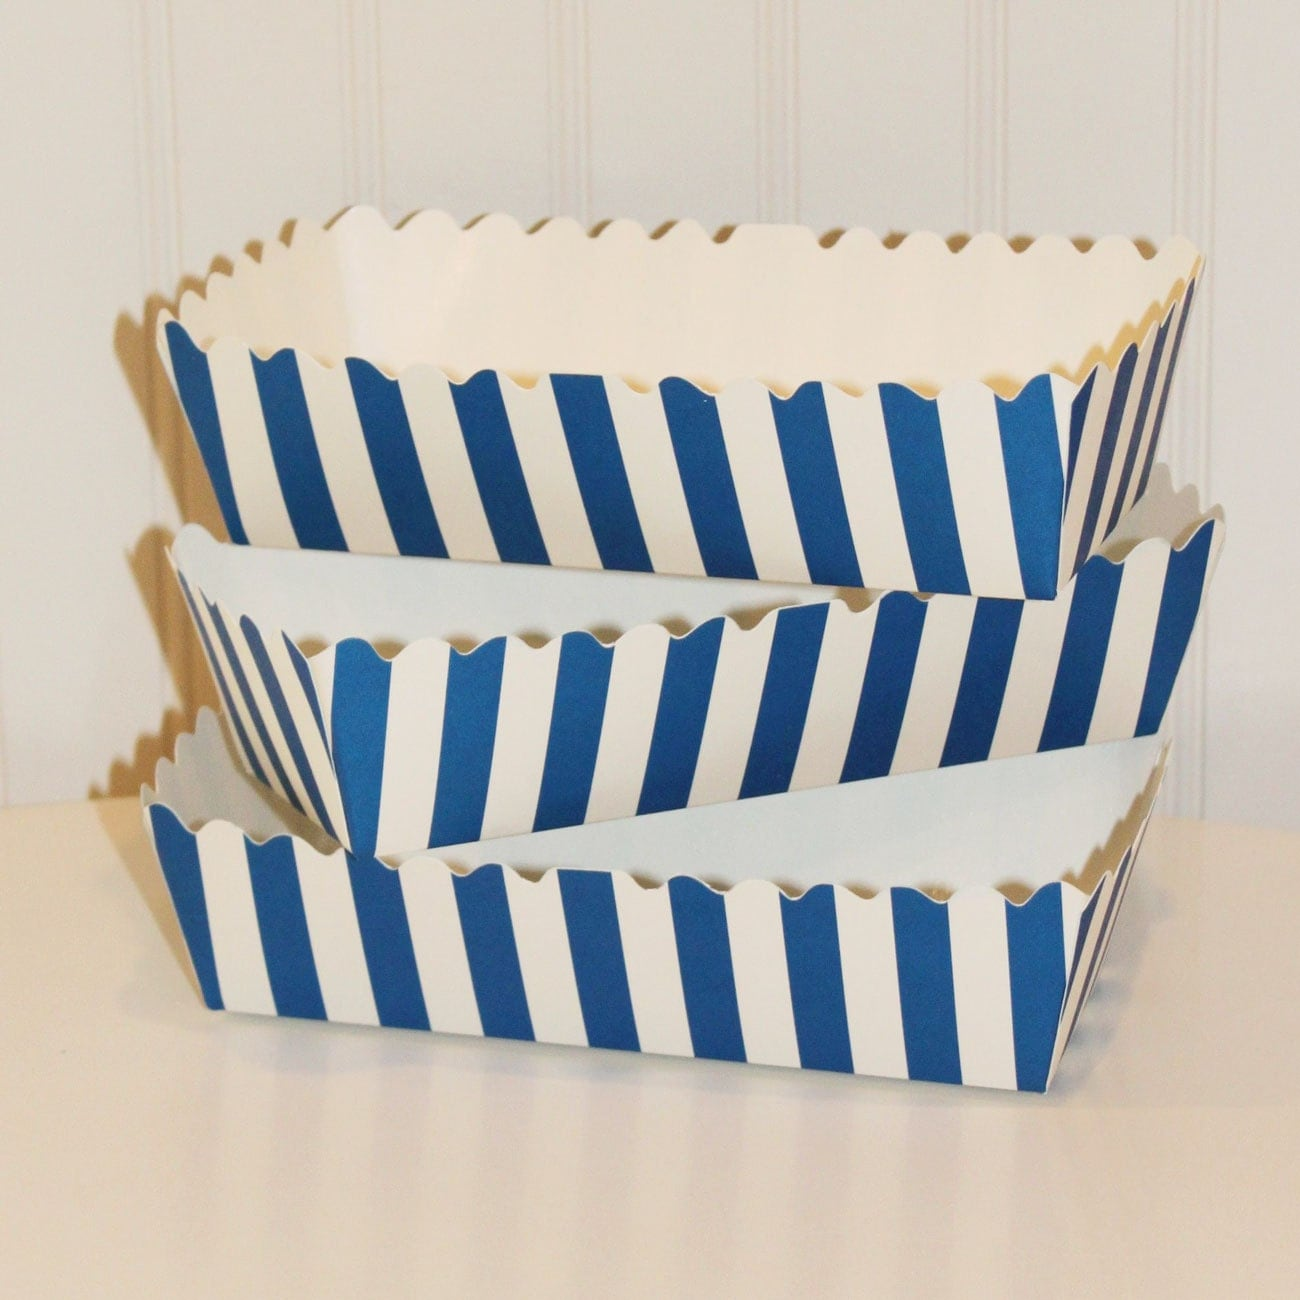 Paper food tray 5 blue stripe food trays hot dog tray for Paper food tray template